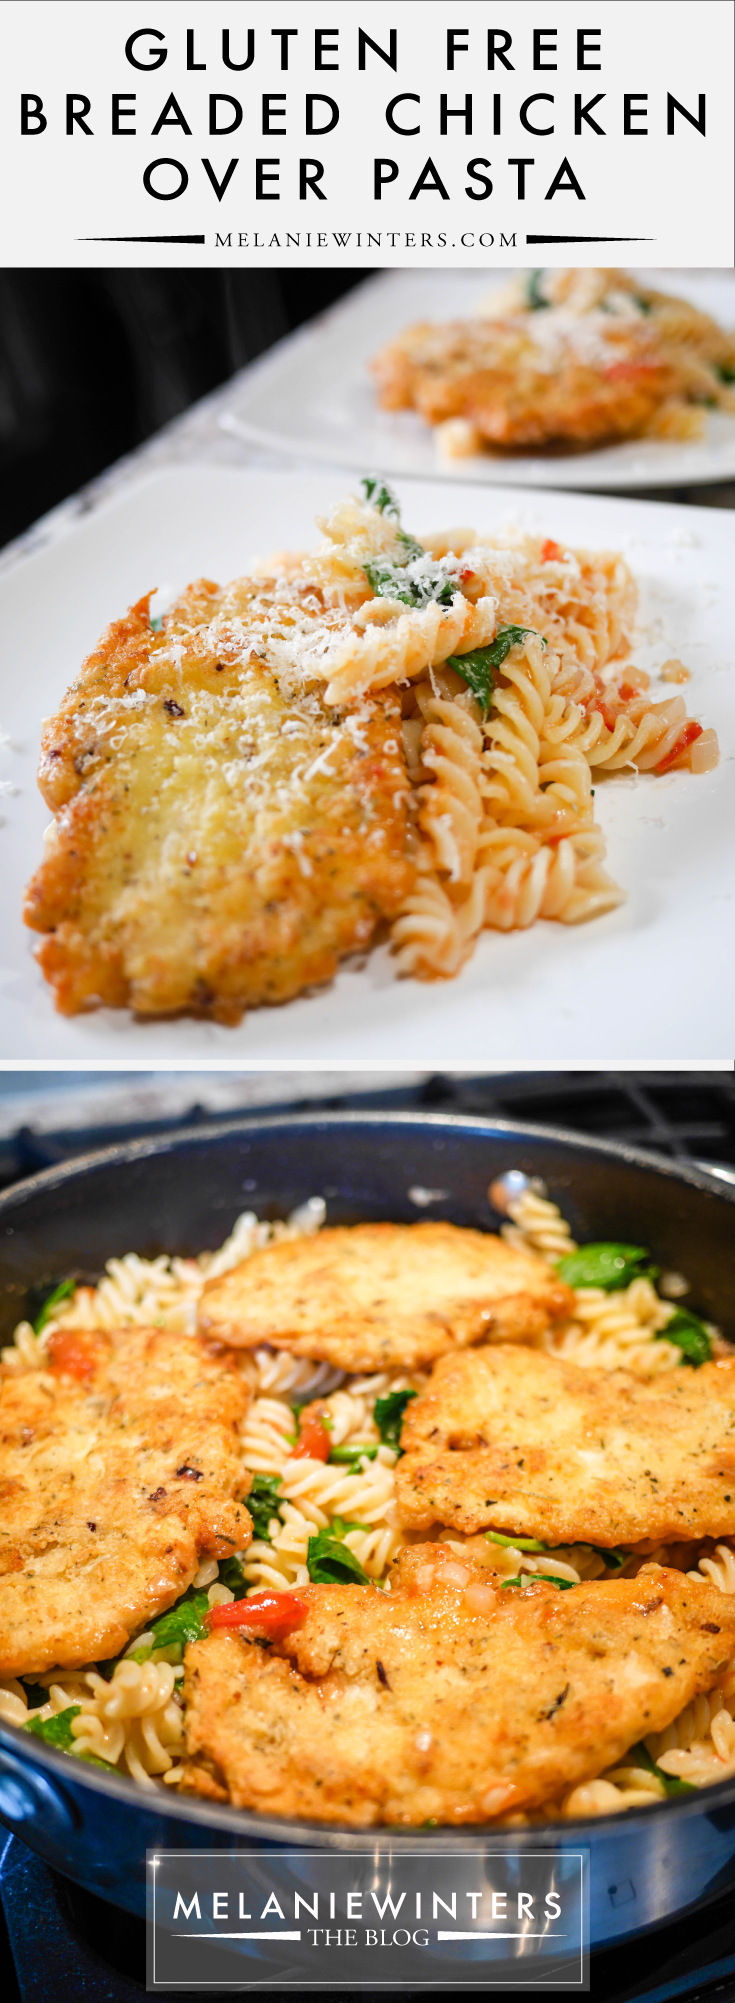 Just because you're gluten free doesn't mean you have to cut out breaded chicken and pasta! Make this restaurant-worthy Italian dish right in your own kitchen.